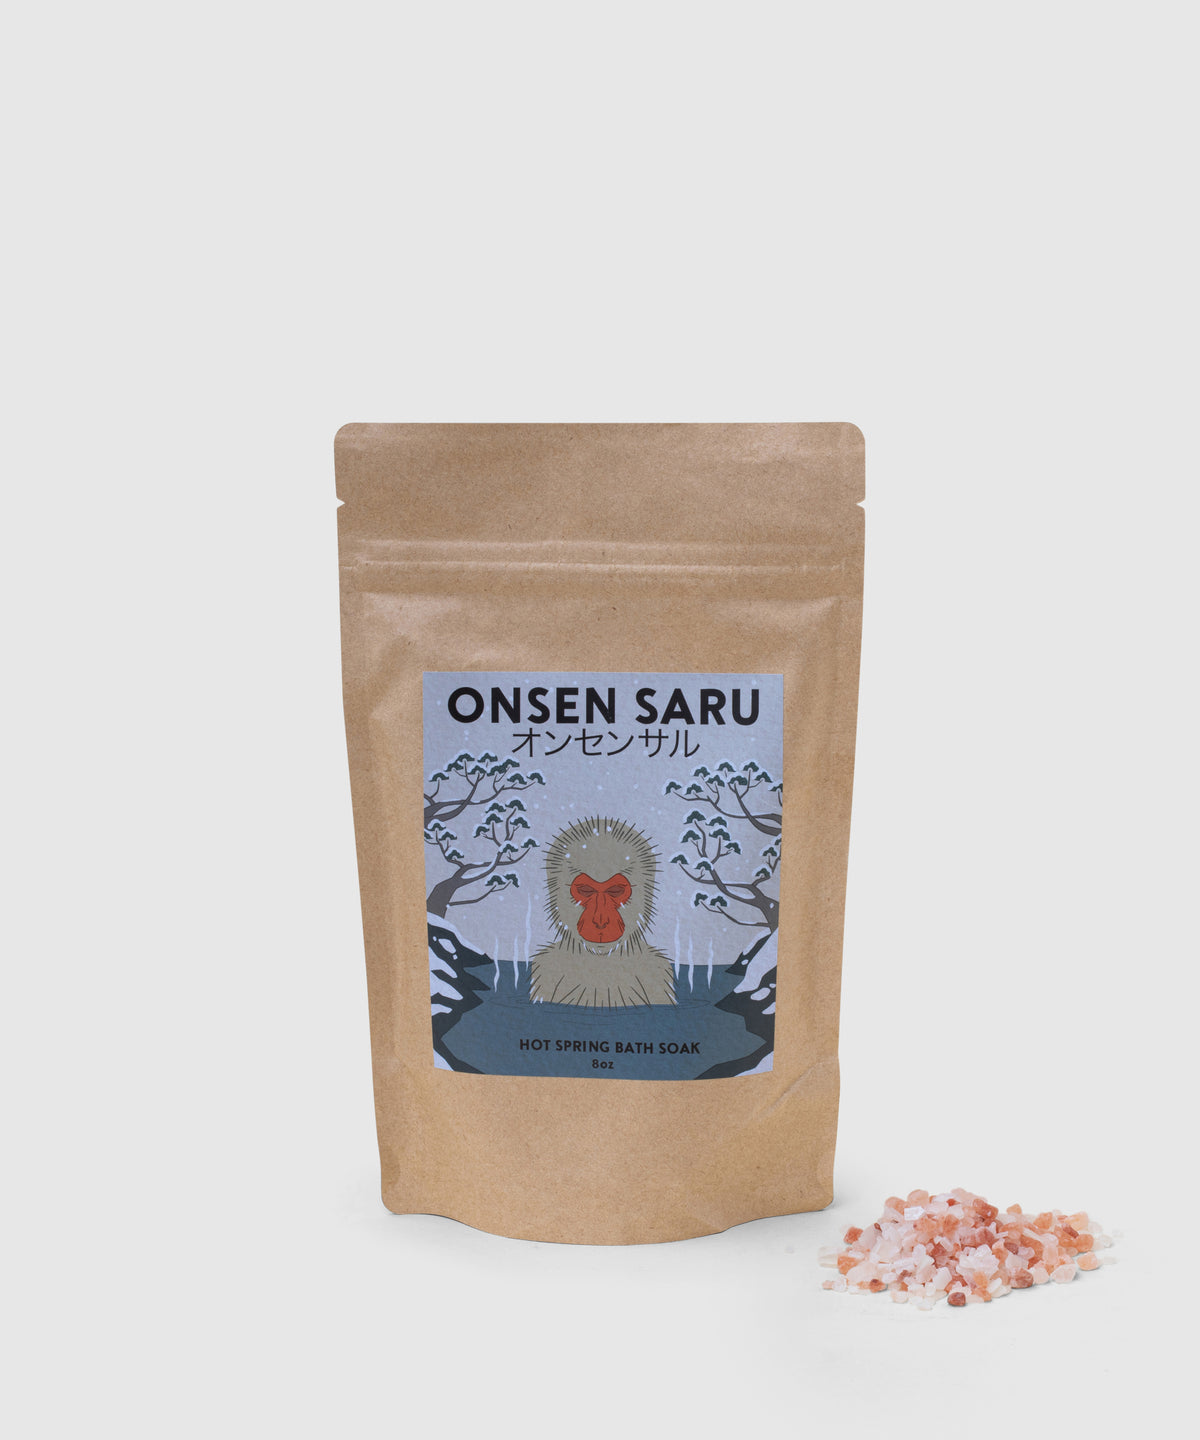 Japanese Onsen Saru Hot Springs Bath Soak